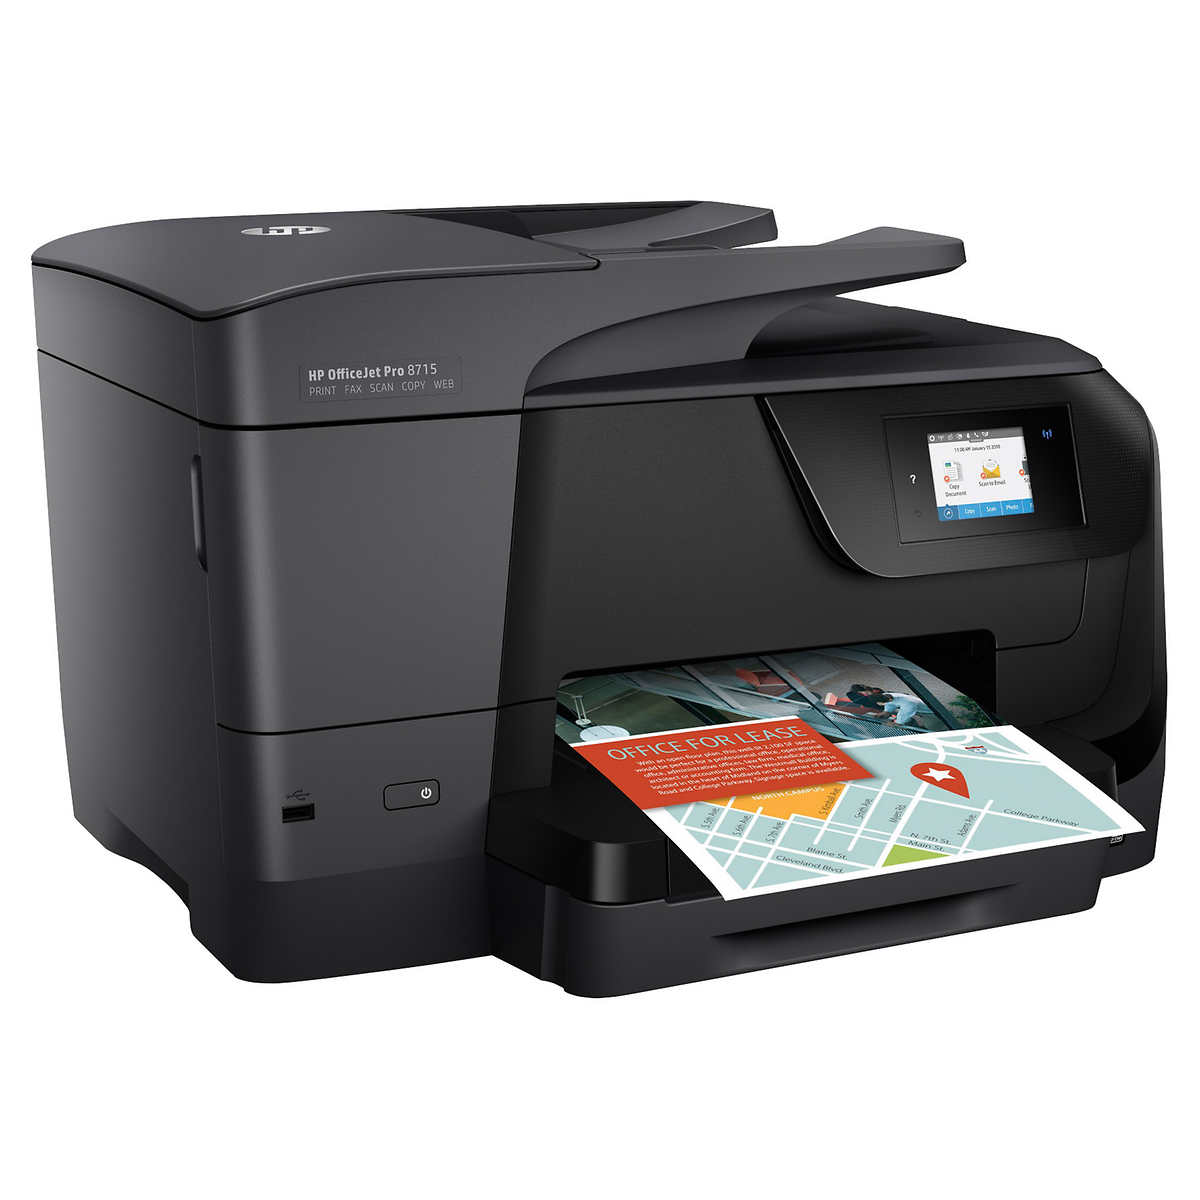 Color art printing anchorage - Hp Officejet Pro 8715 All In One Color Inkjet Printer